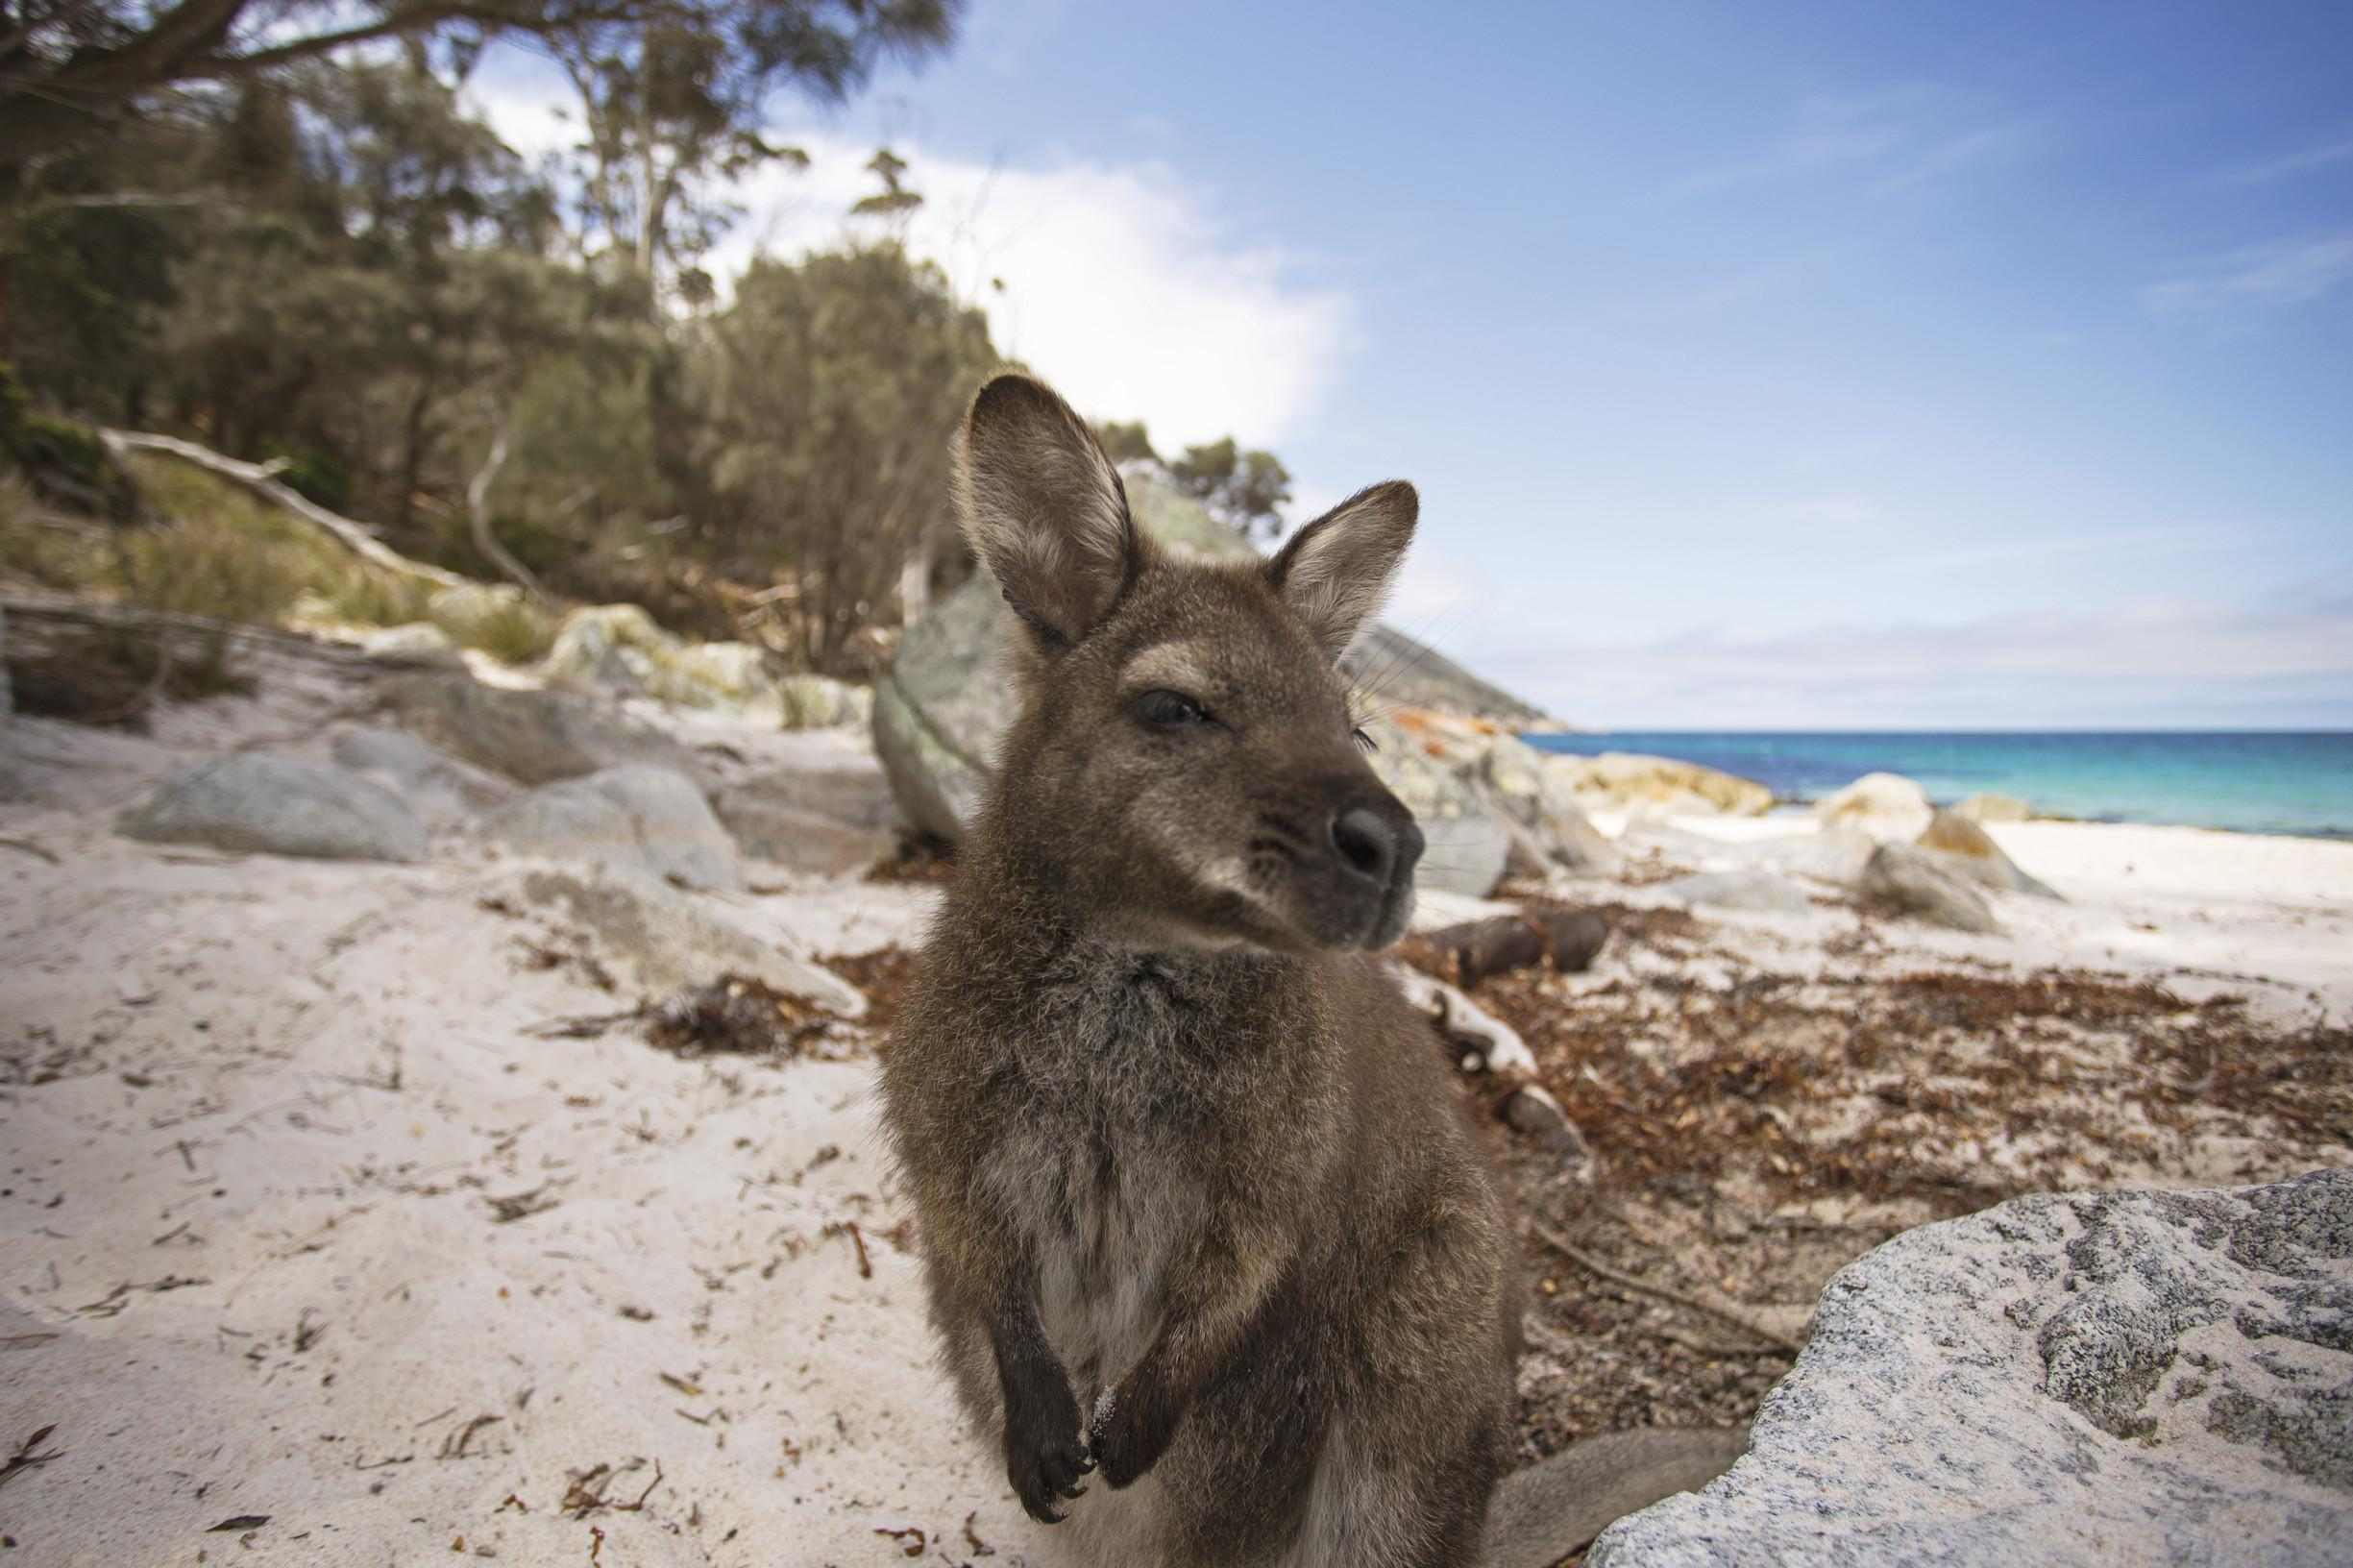 Wallabies wombats and convicts adventures off the coast of wallabies wombats and convicts adventures off the coast of tasmania the independent fandeluxe Gallery